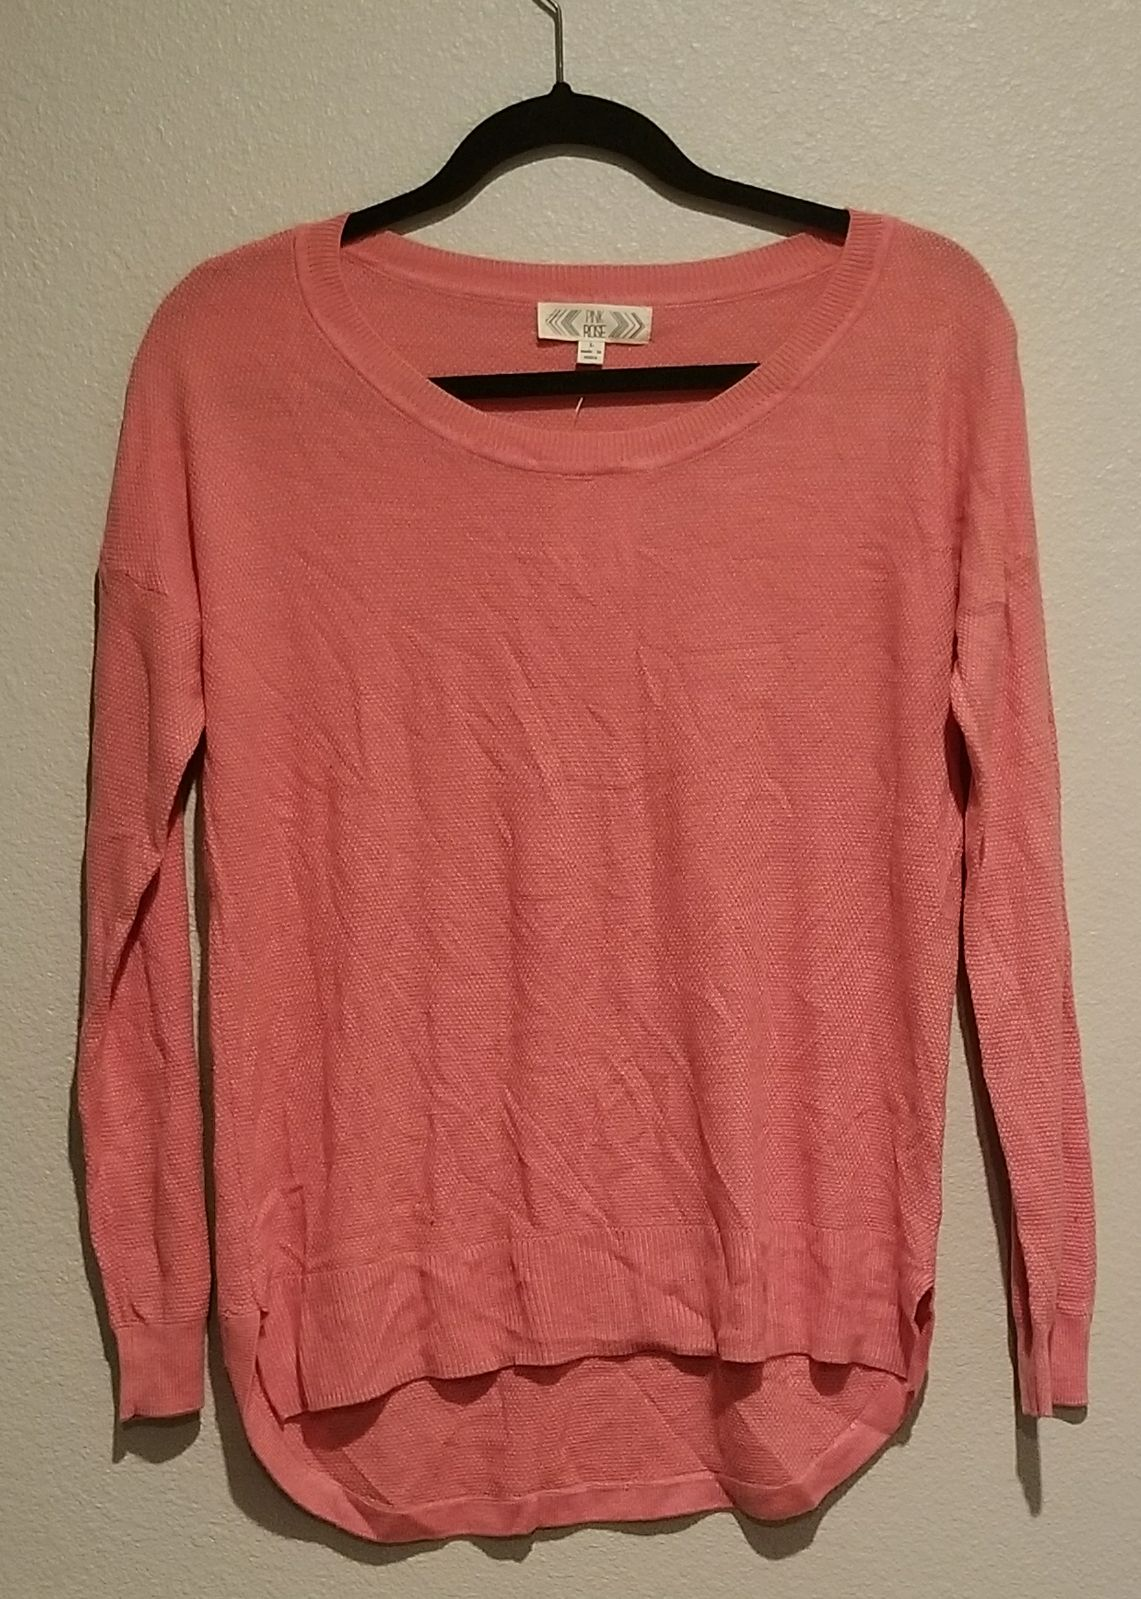 Women's Pink Rose sweater - Mercari: BUY & SELL THINGS YOU LOVE